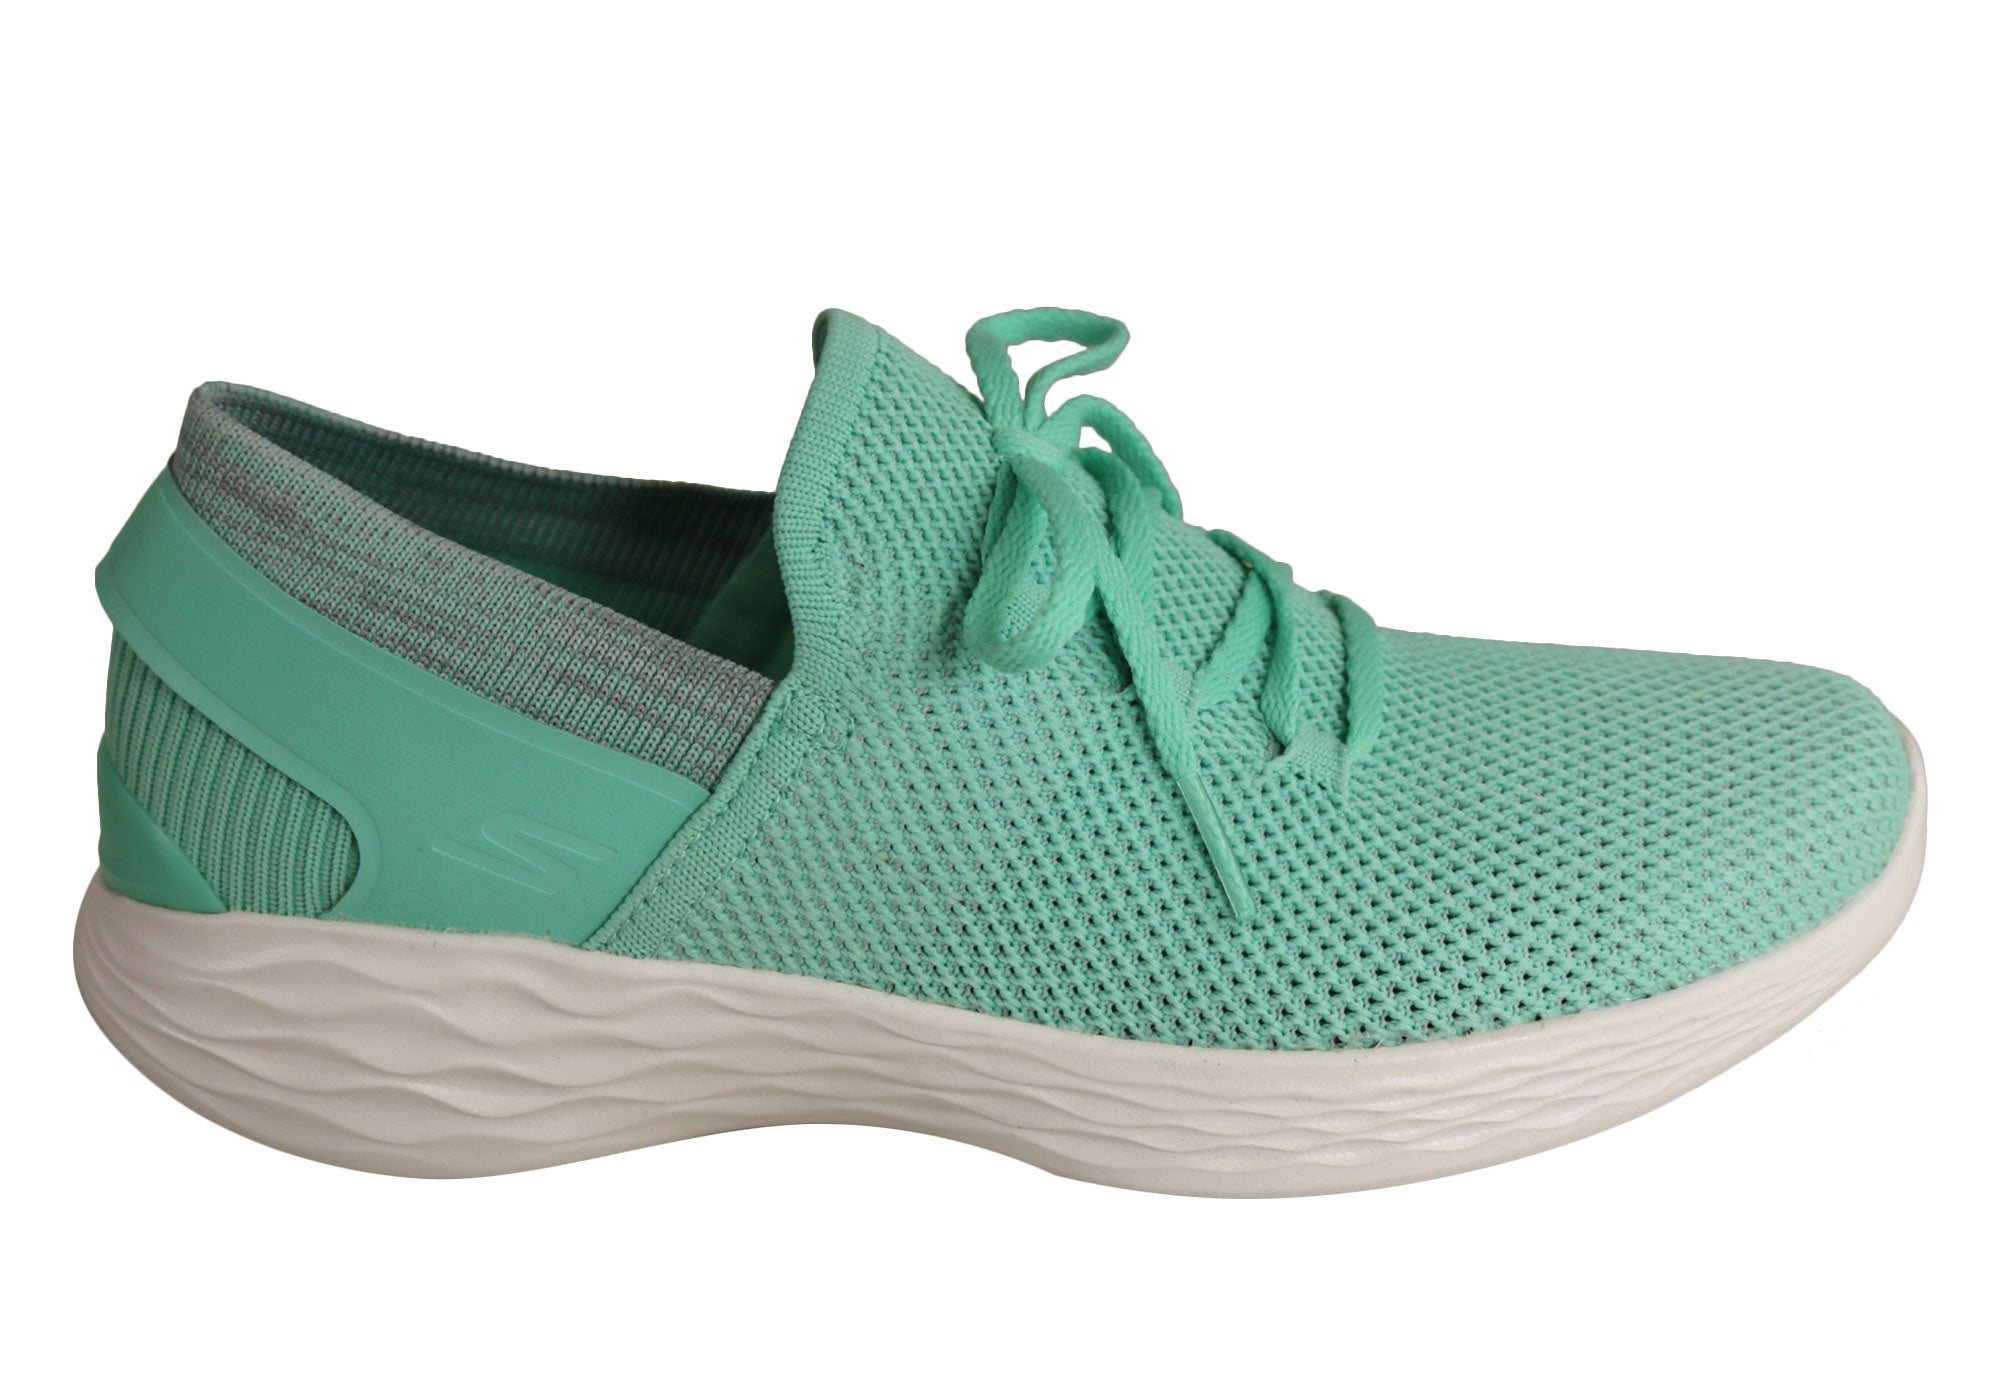 Skechers You Spirit Womens Comfortable Casual Slip On Shoes  09fa2ae0b